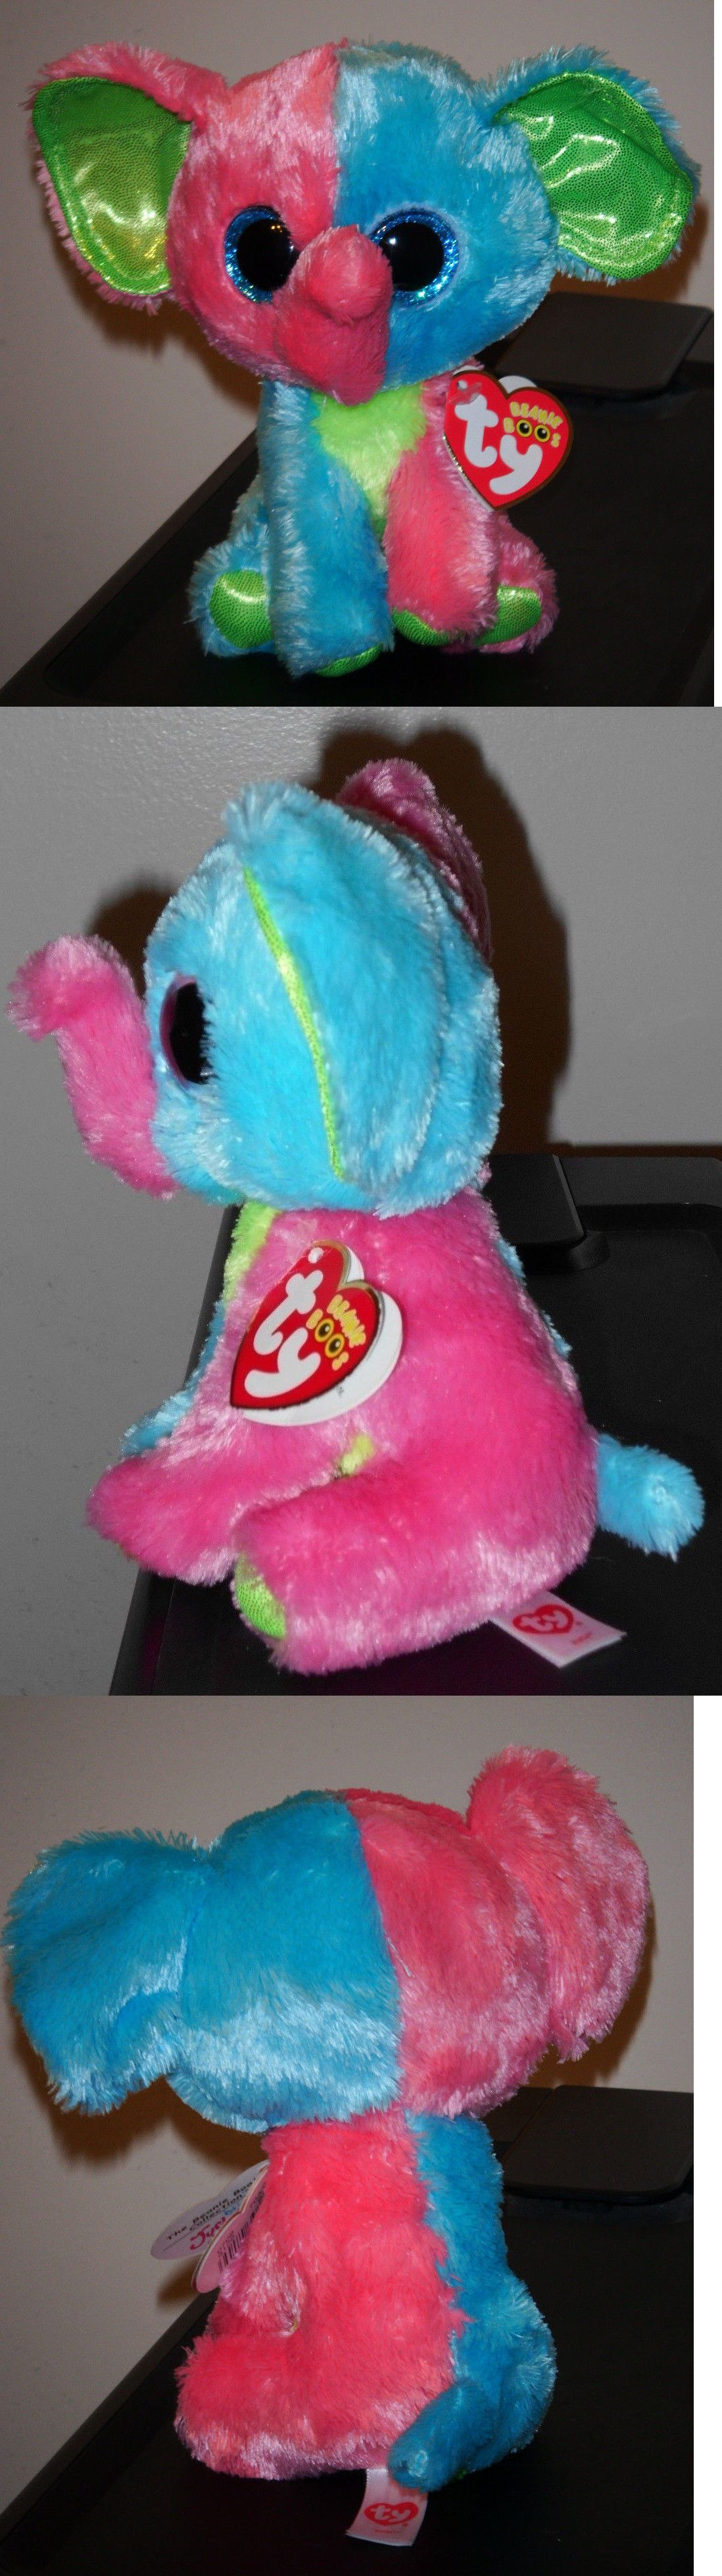 fa197a9a3dc Ty 19203  Ty Beanie Boo S ~ Elfie The Elephant (6 Inch)(Justice Exclusive)  New Mwmt -  BUY IT NOW ONLY   16.9 on  eBay  beanie  elfie  elephant